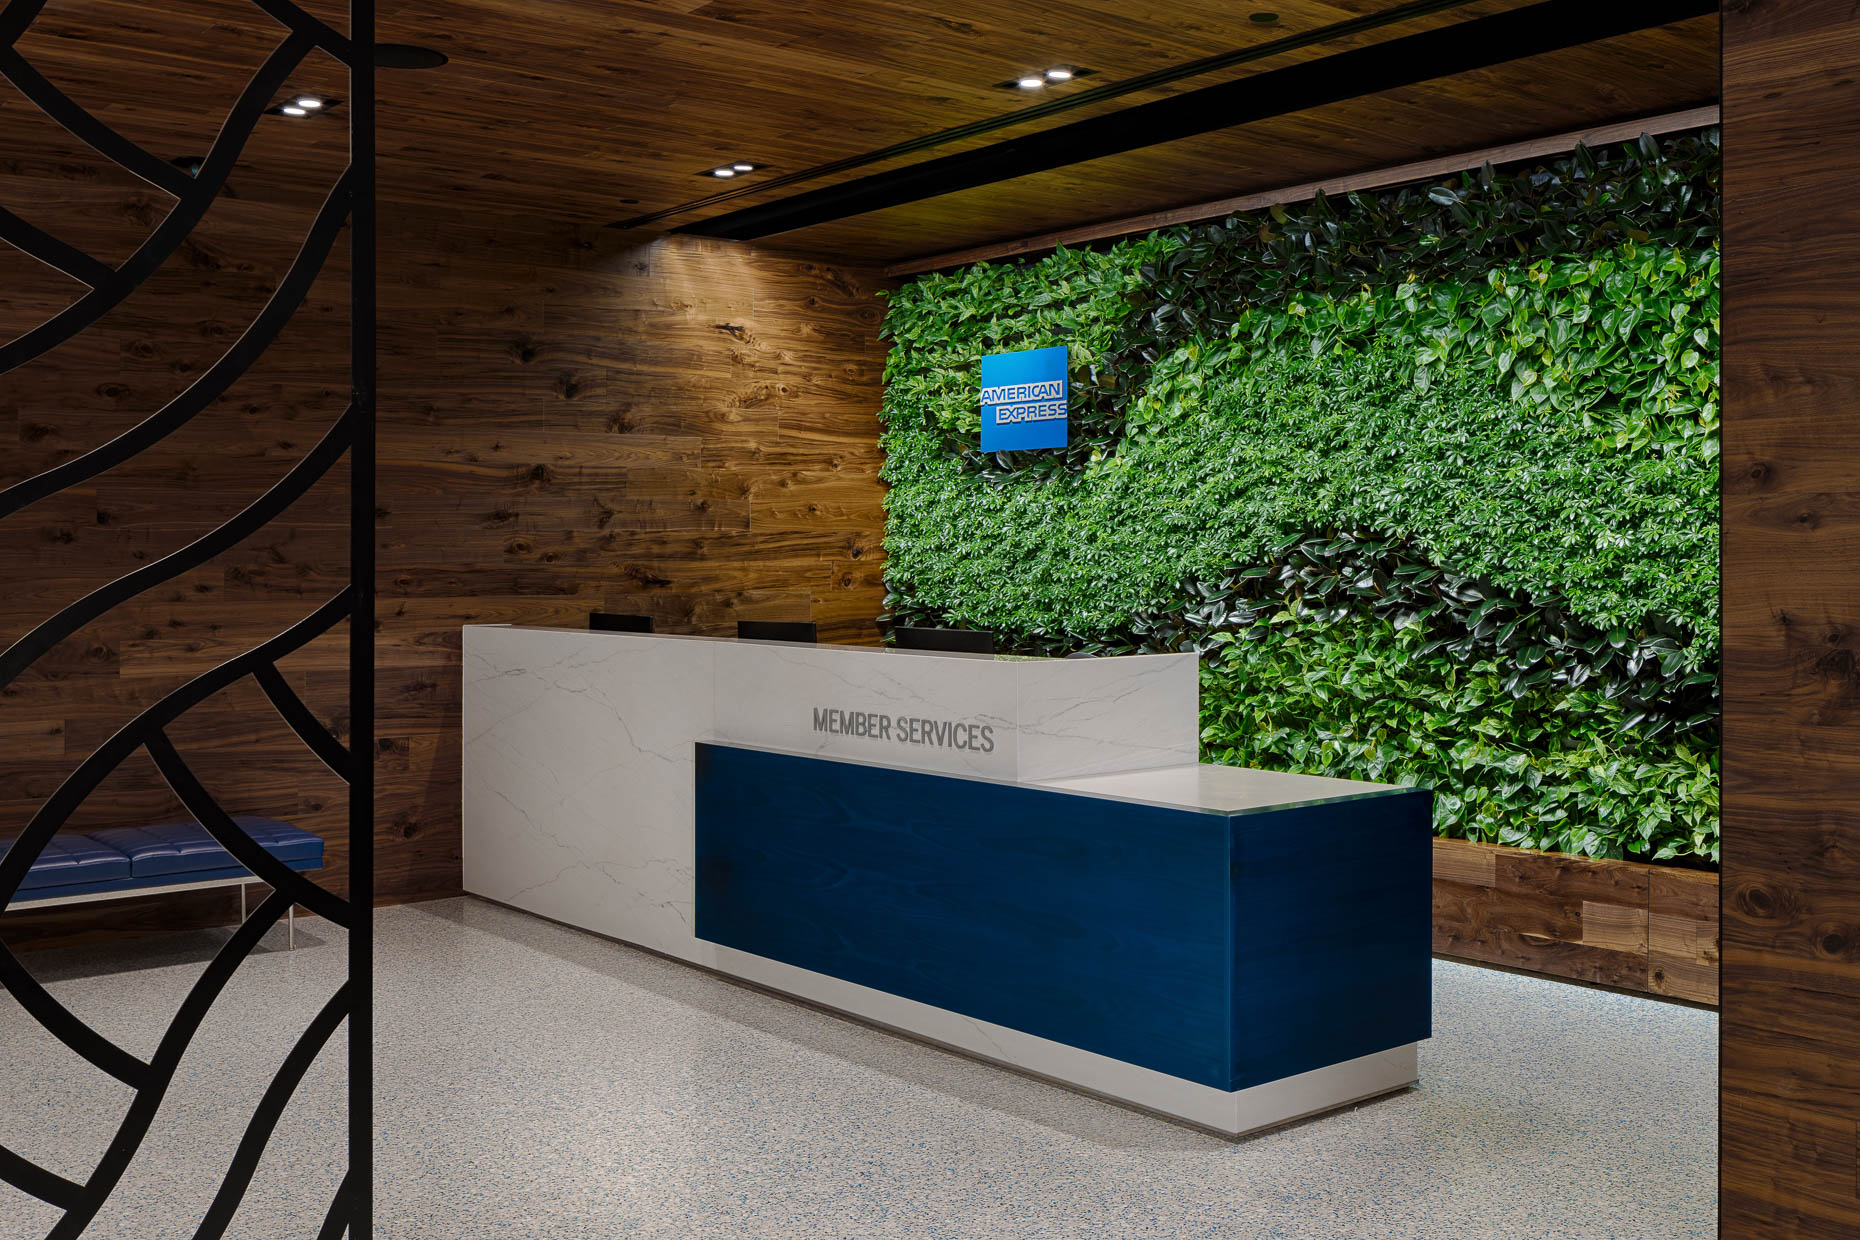 Charlotte Douglas International Airport AMEX Centurion Lounge for American Express photographed by Brad Feinknopf based in Columbus, Ohio